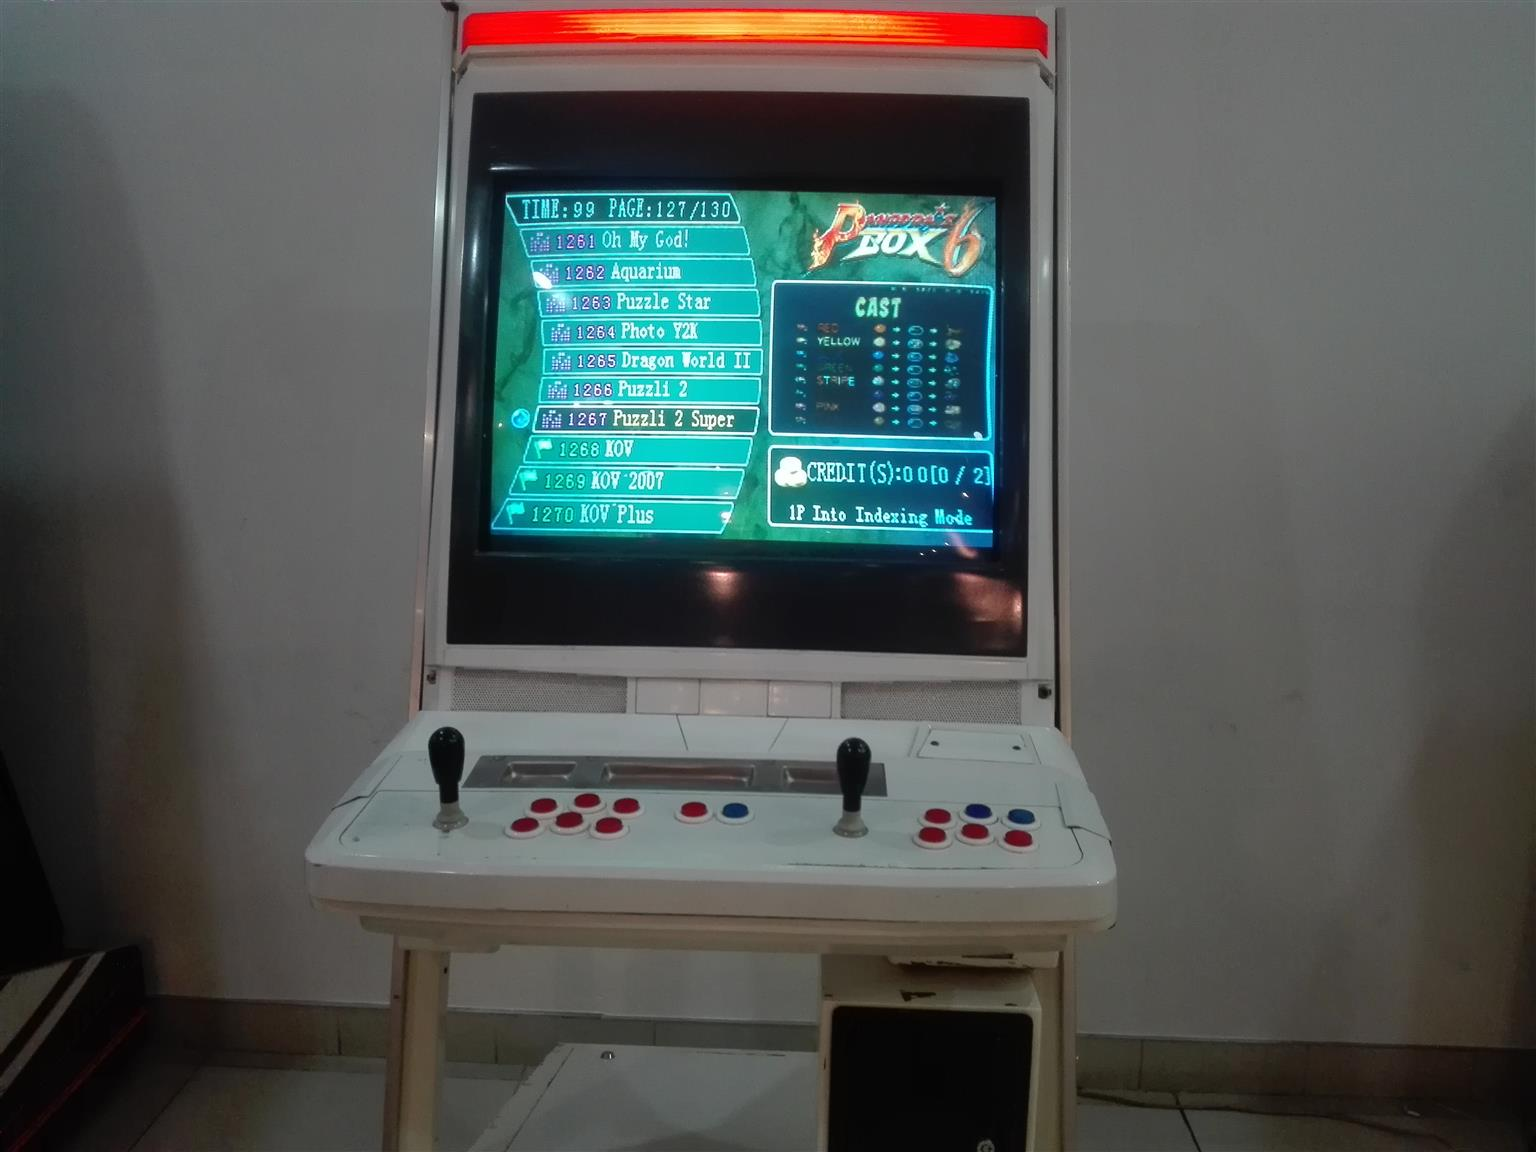 AM SELLING AN ARCADE GAME